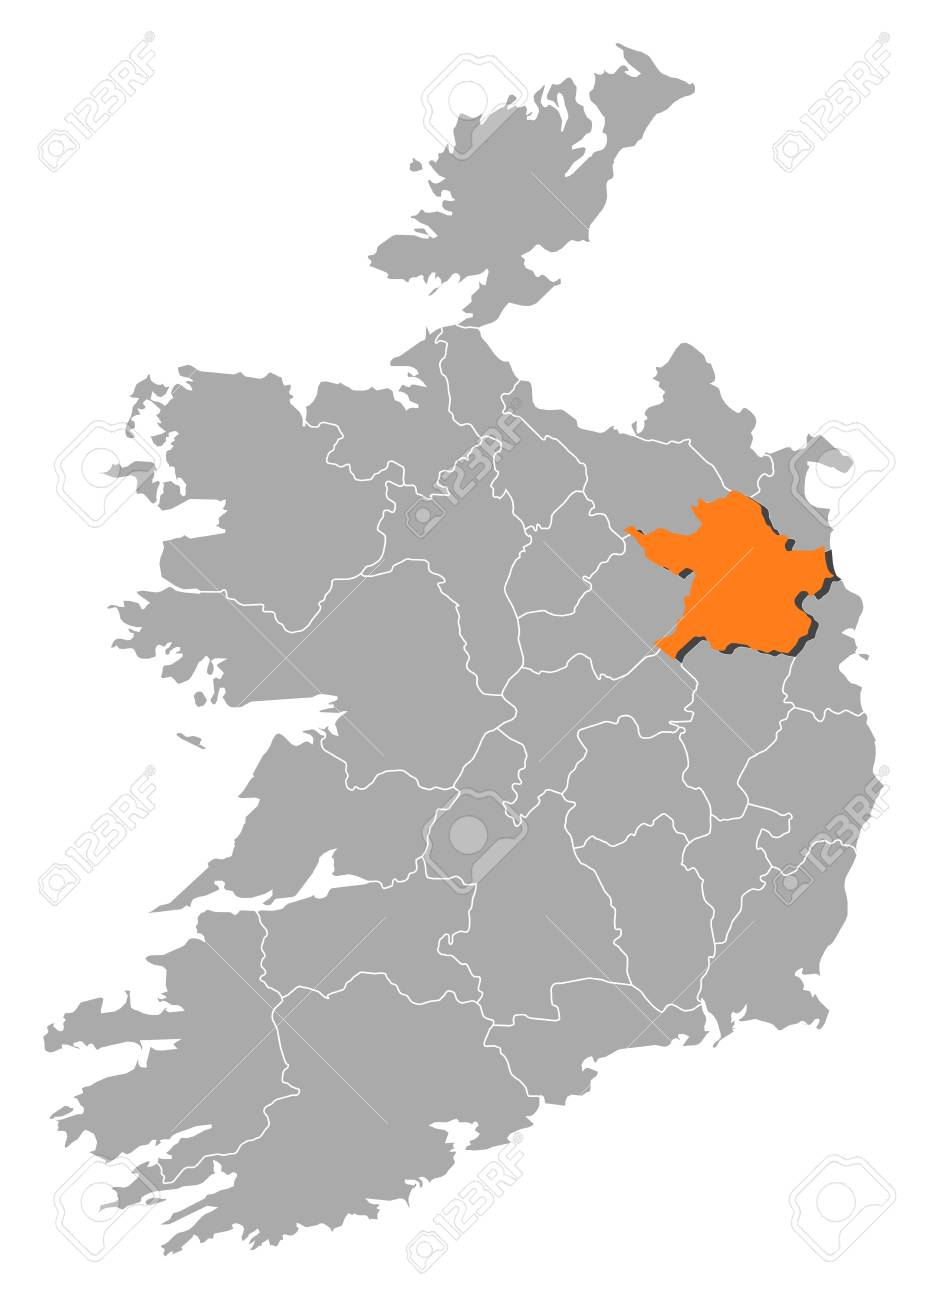 Map Of Ireland With The Provinces Meath Is Highlighted By Orange